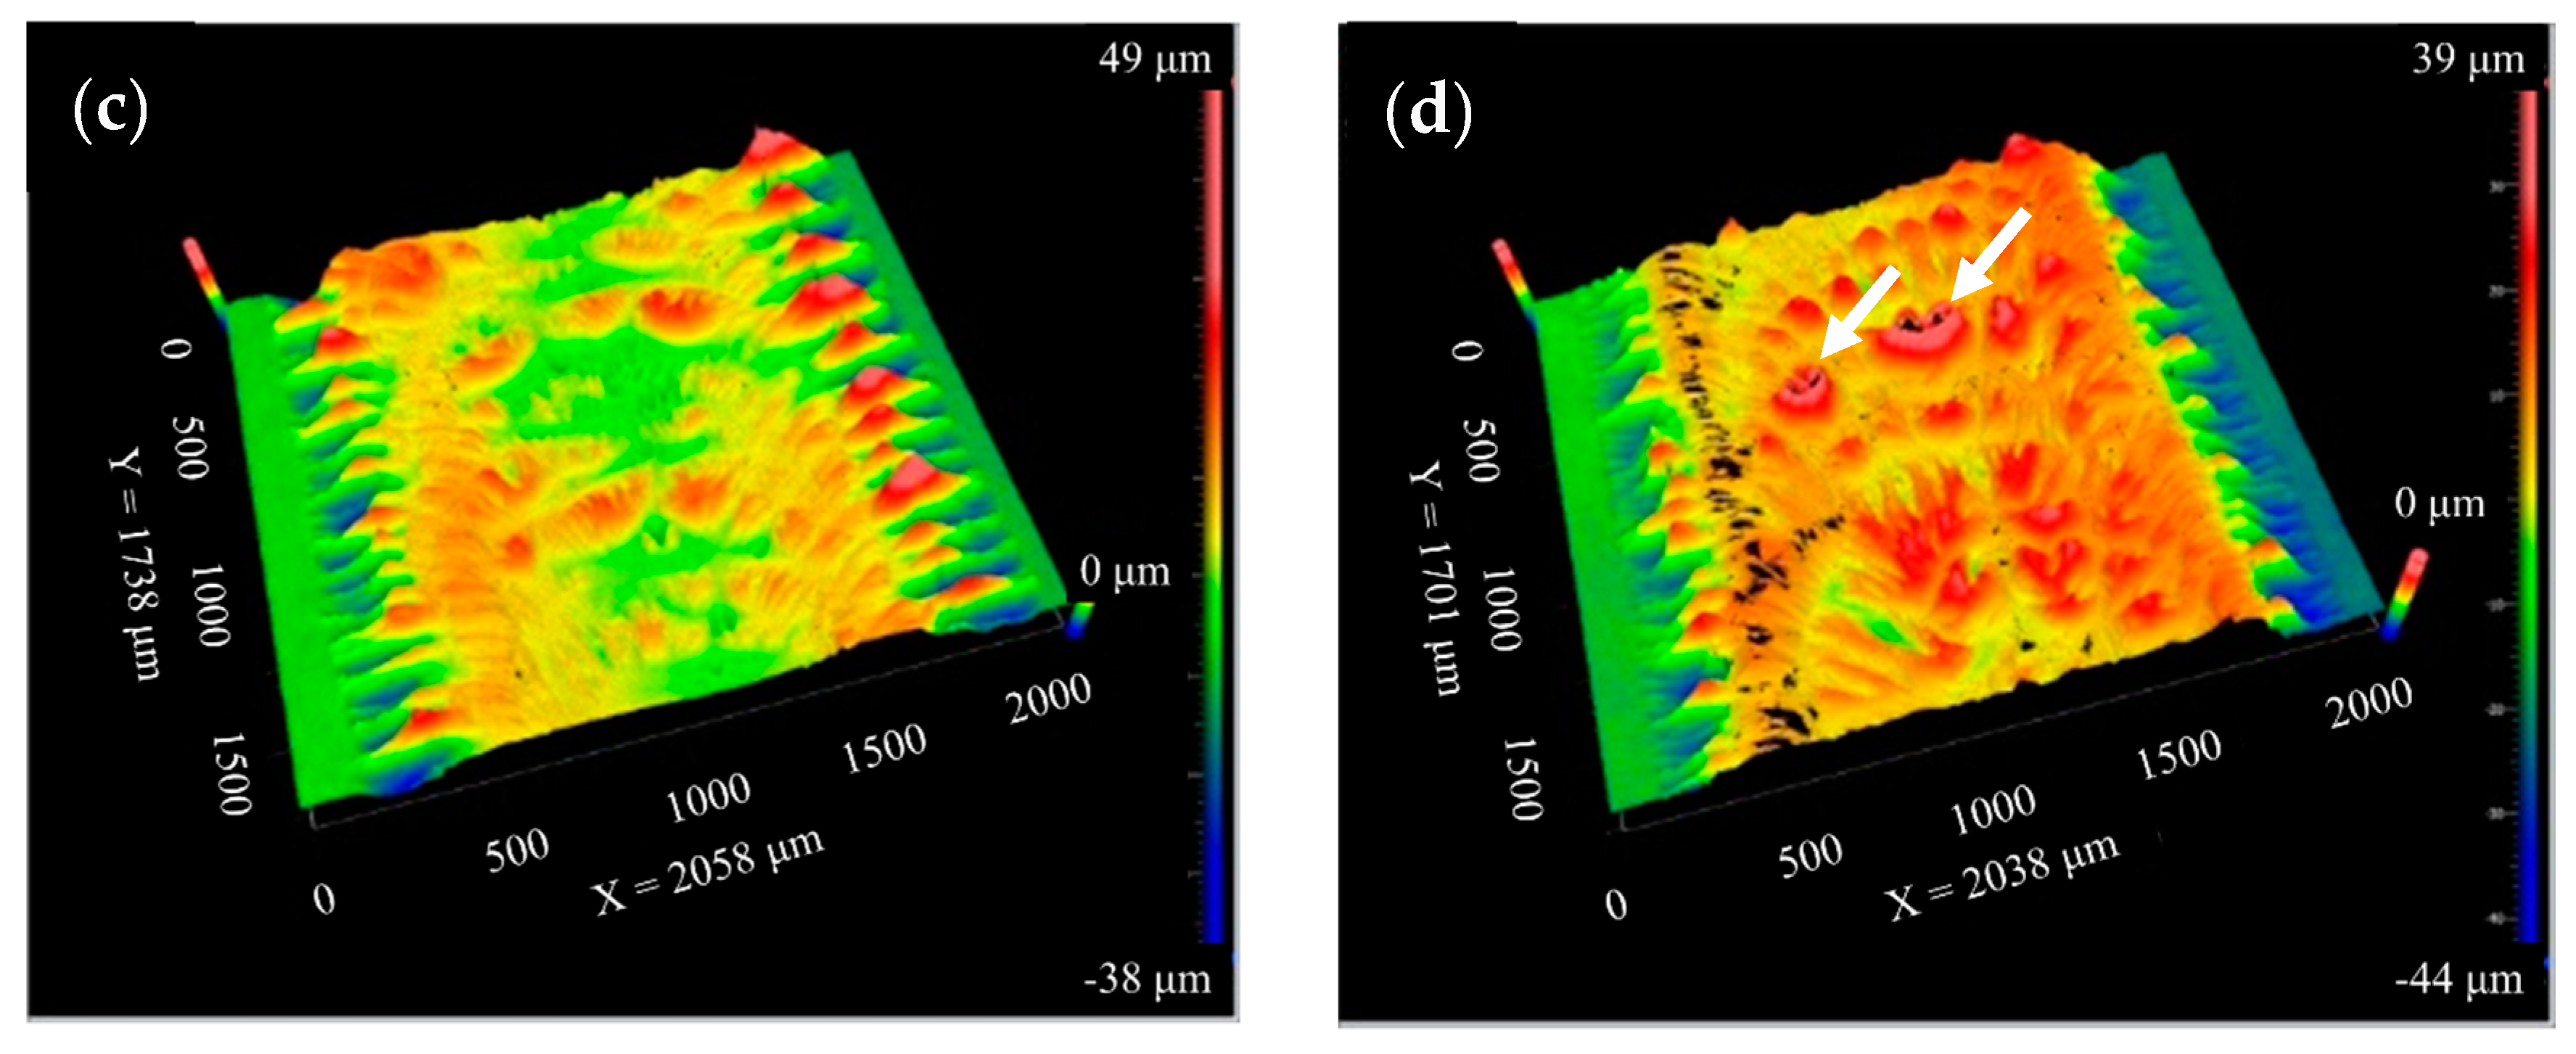 Coatings | Free Full-Text | Laser-Sustained Plasma (LSP